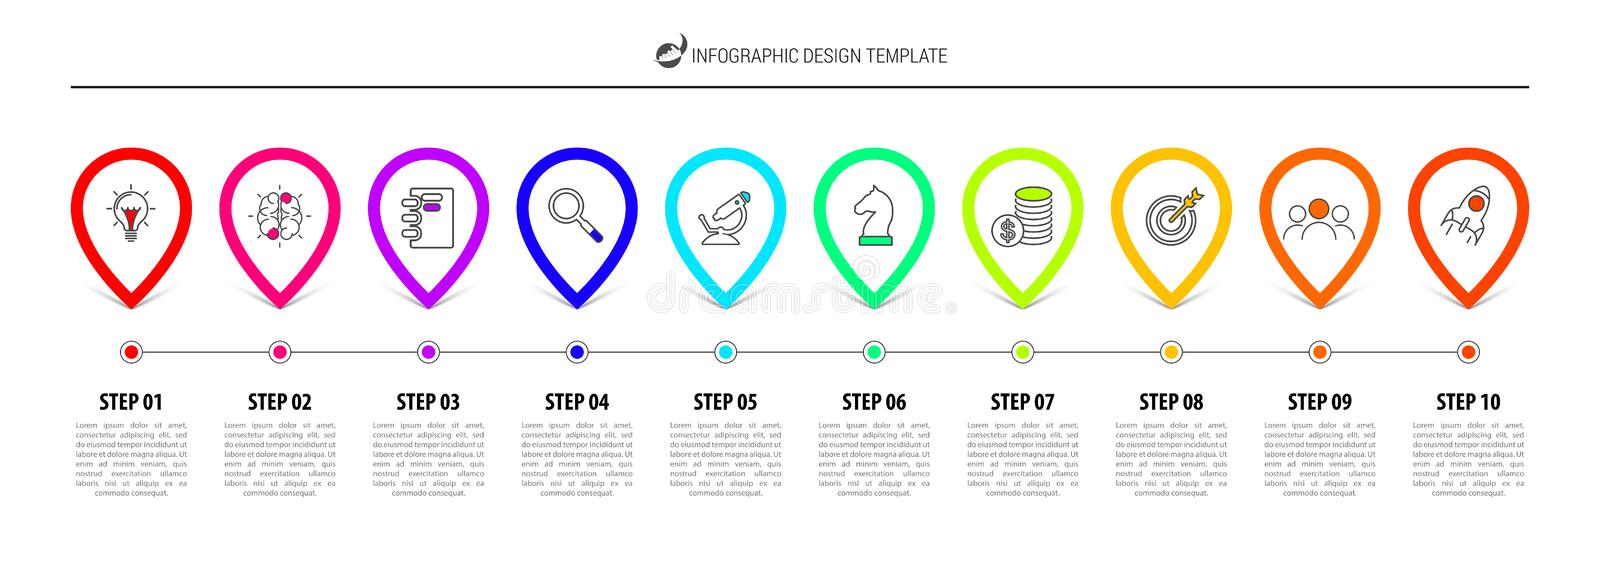 Infographic design template. Timeline concept with 10 steps stock illustration